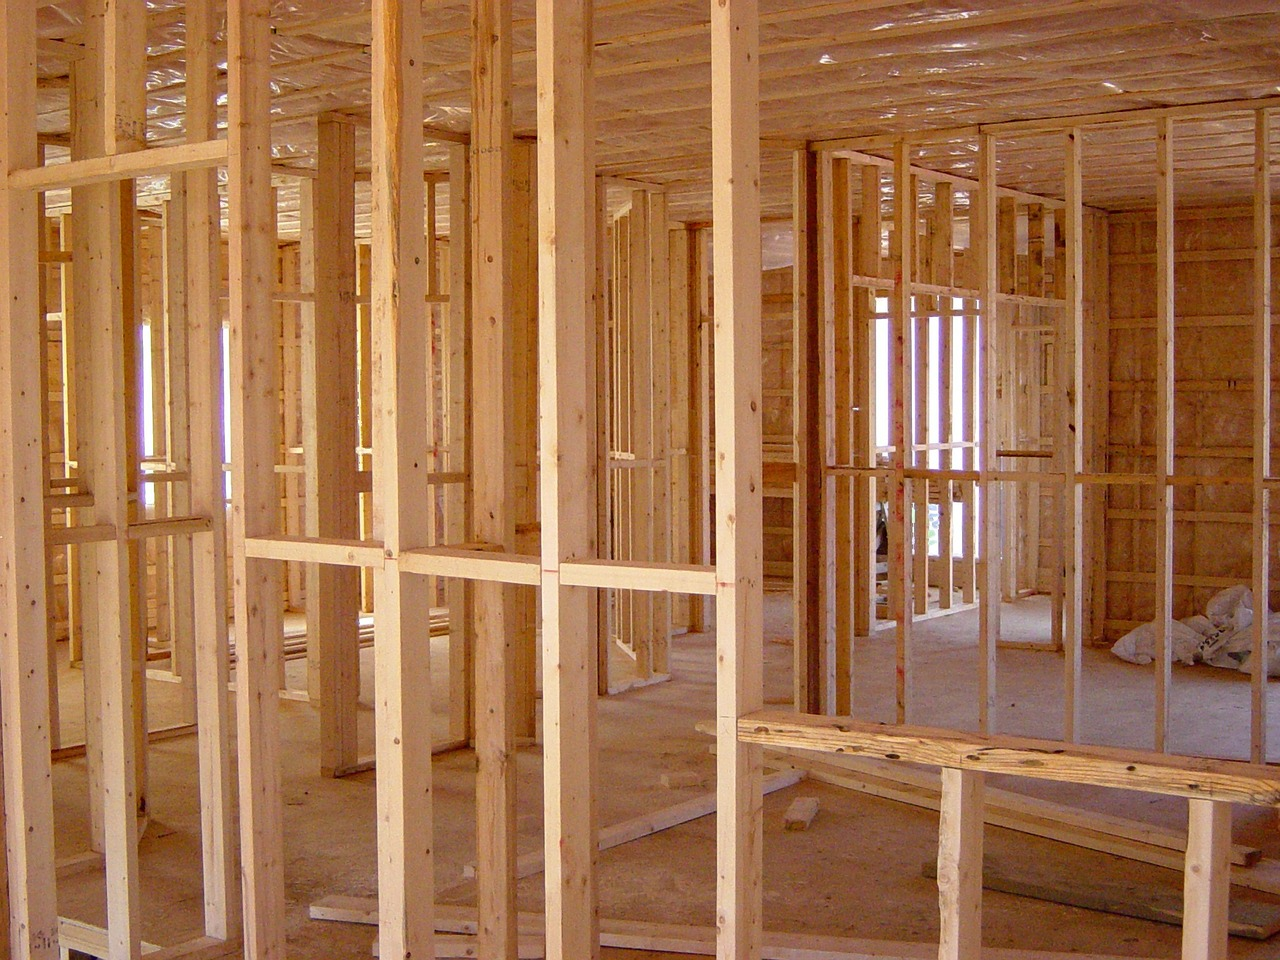 Construction House.jpg